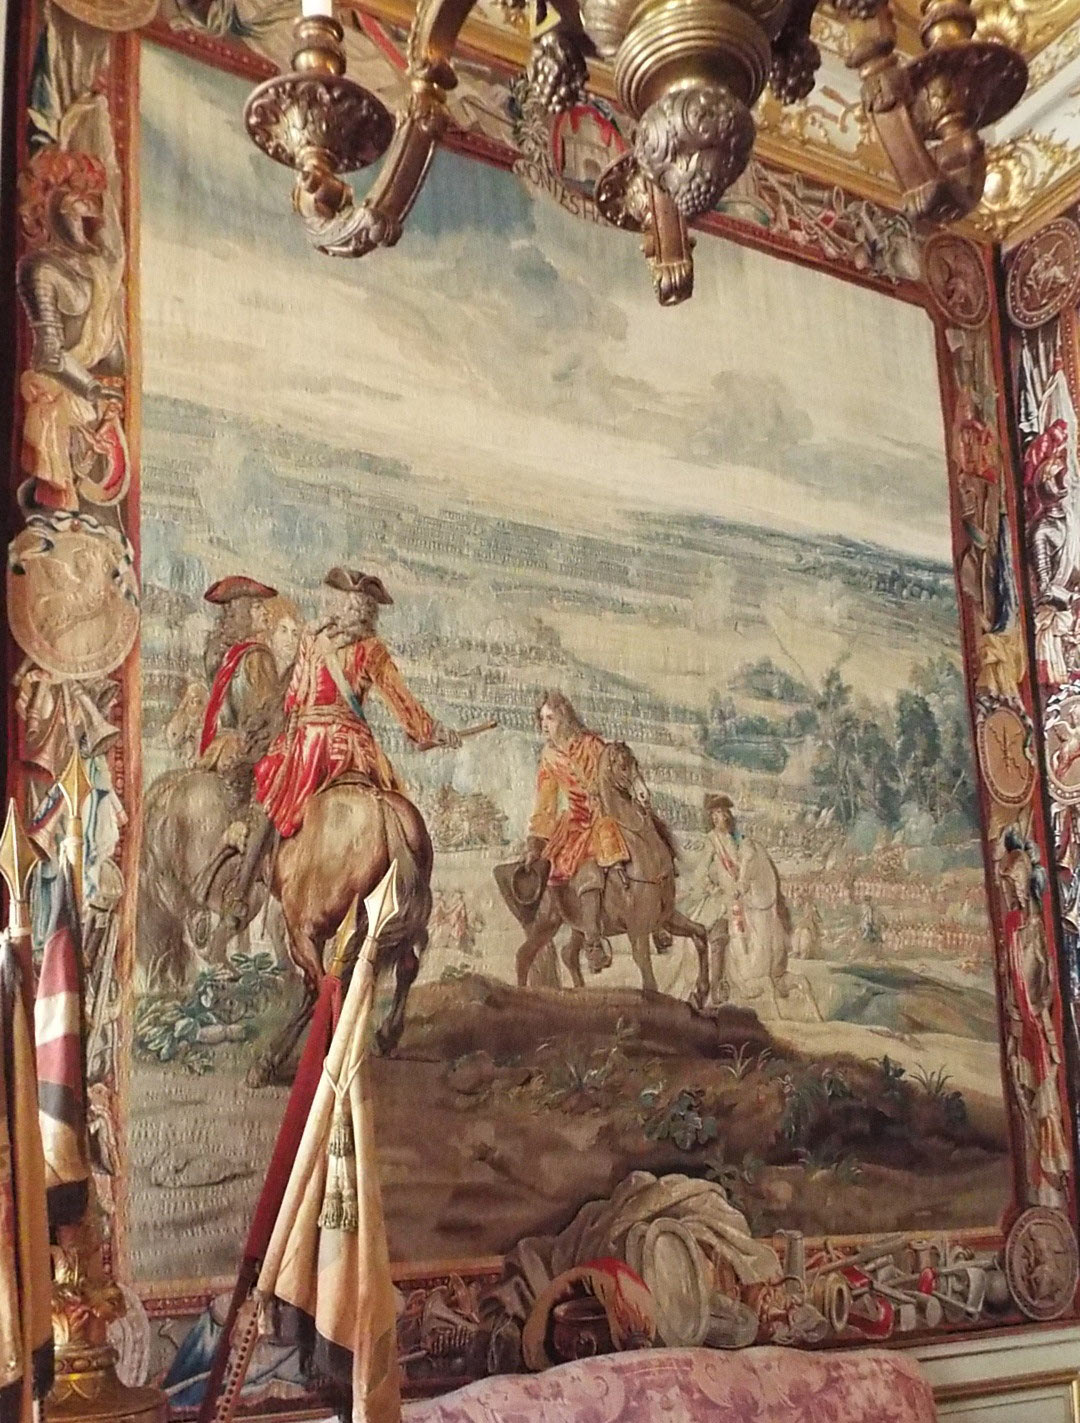 Battle of Malplaquet 11th September 1709 War of the Spanish Succession: Blenheim Palace Tapestry